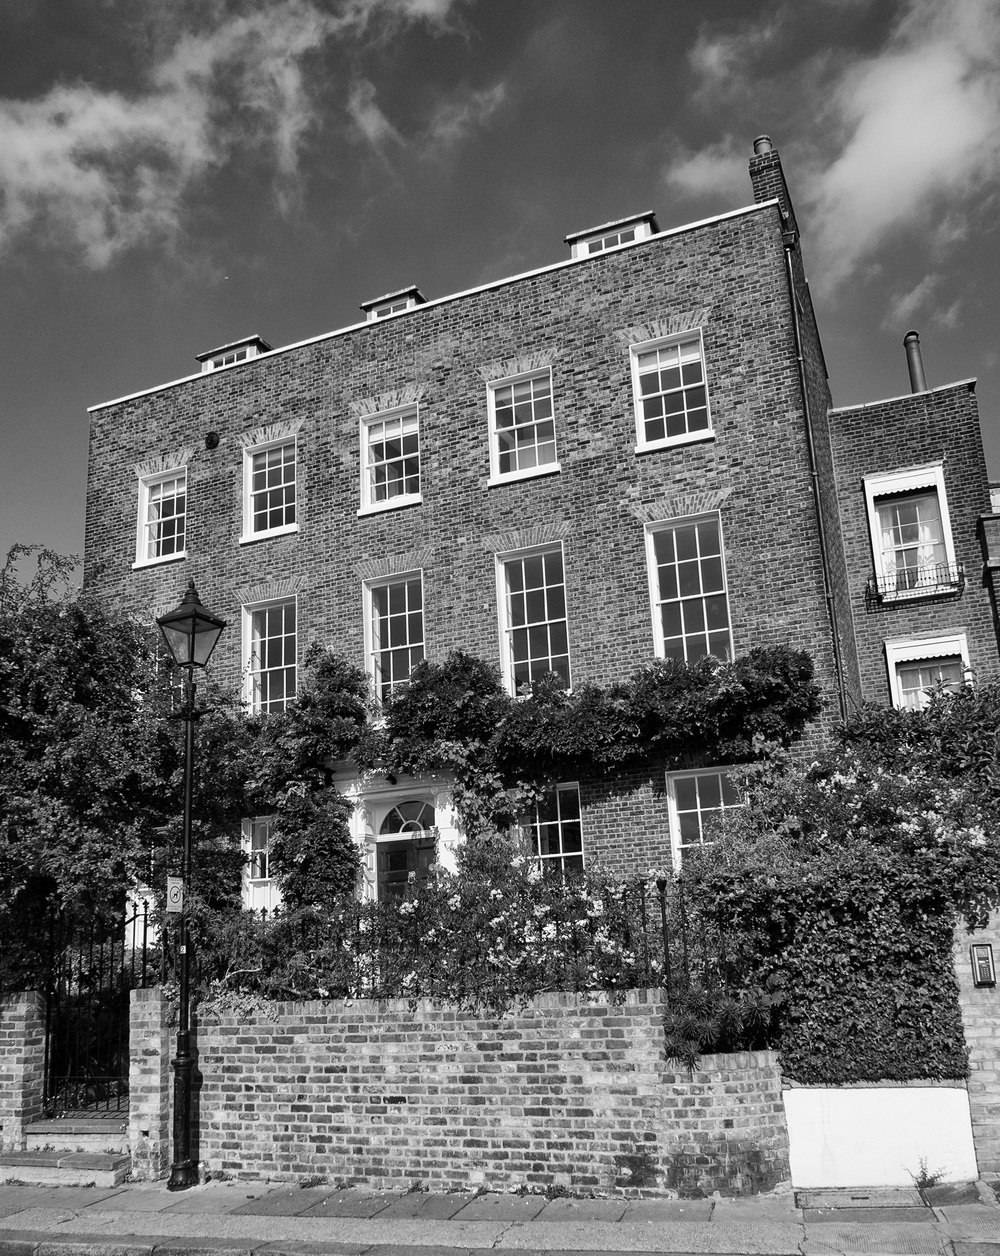 The home of Sir Francis Ronalds at 26 Upper Mall, Hammersmith, later renamed Kelmscott House by William Morris